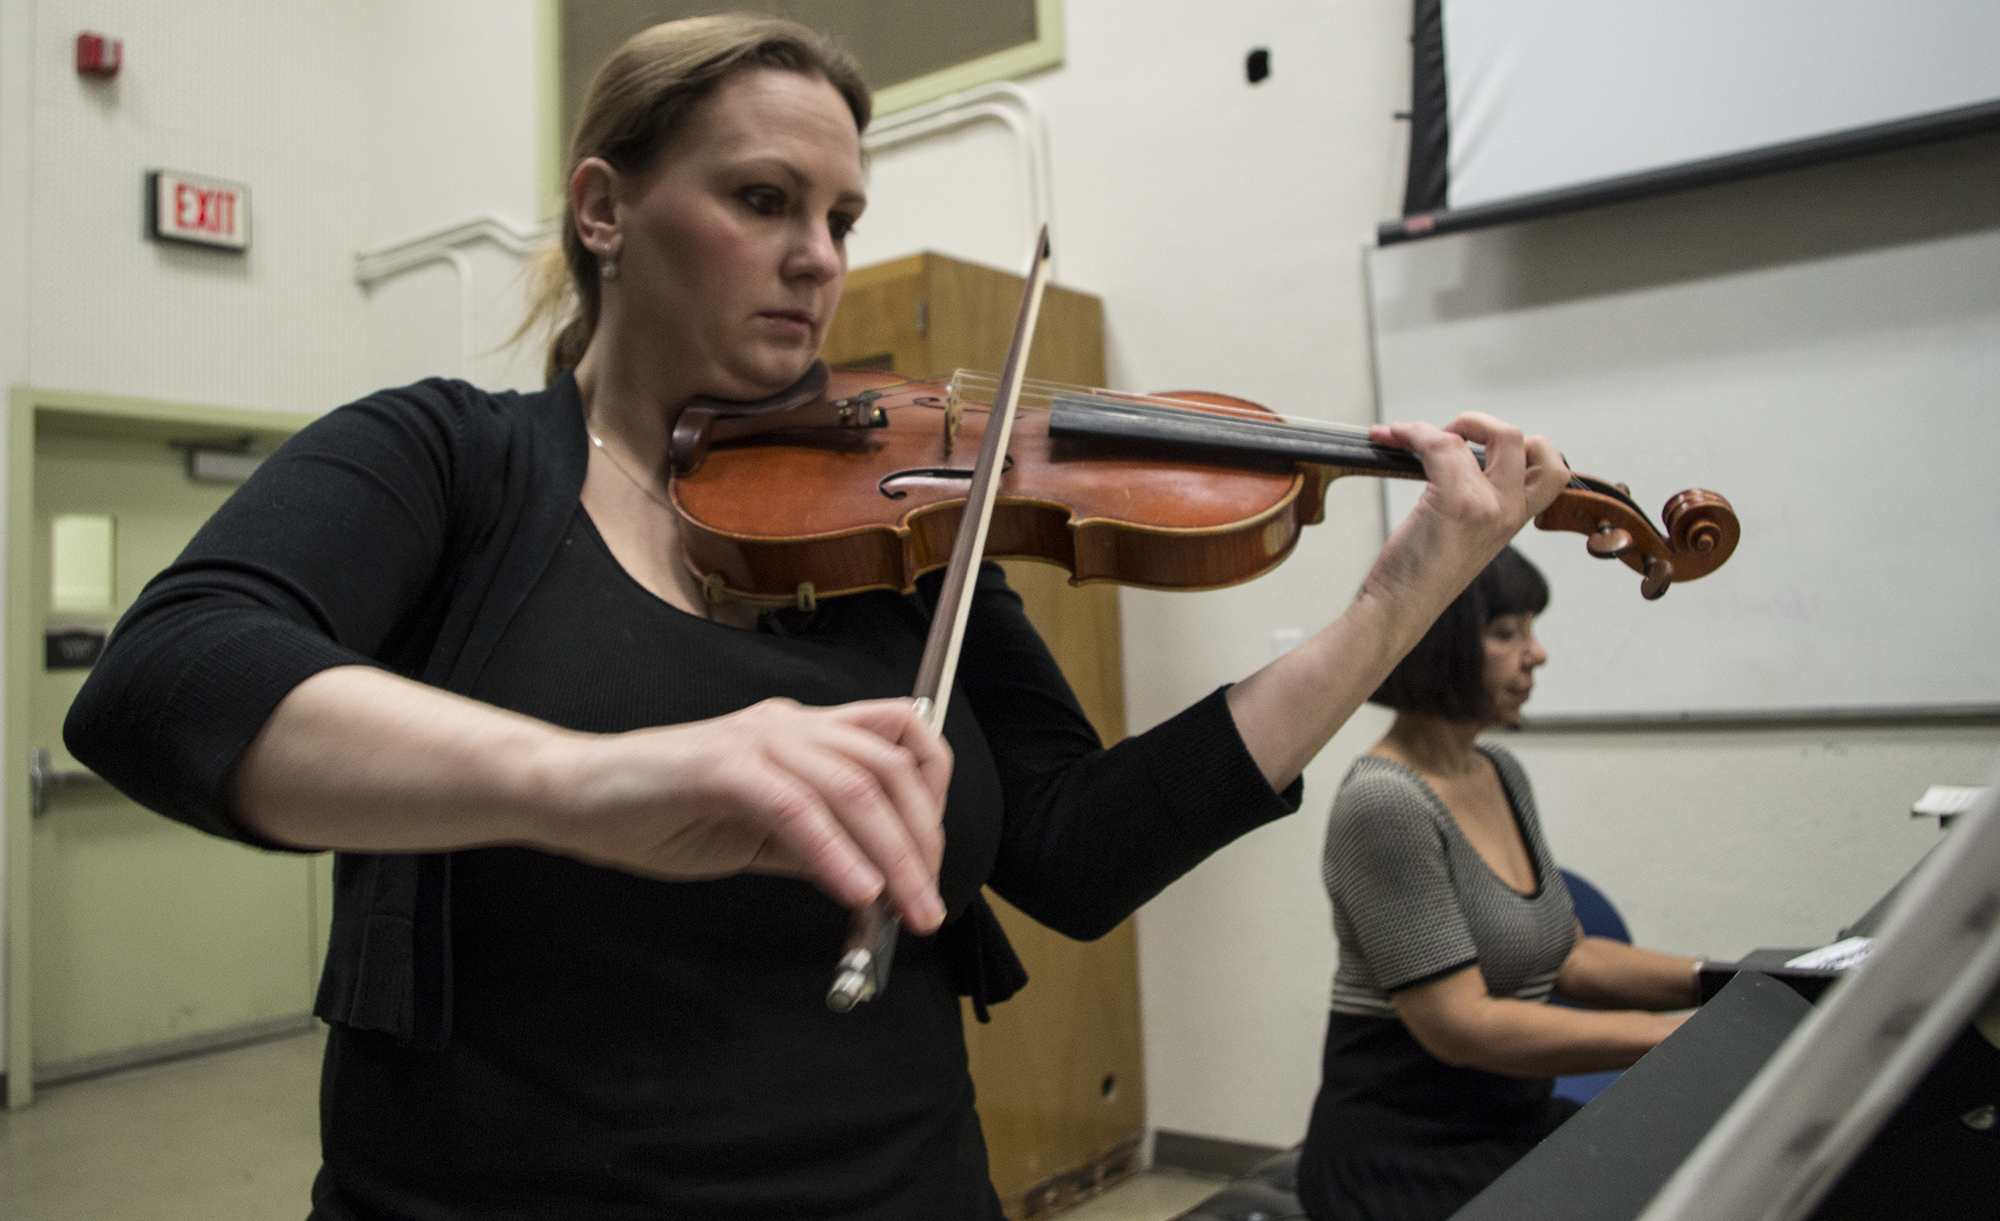 Violinist plays on campus to prepare for recital